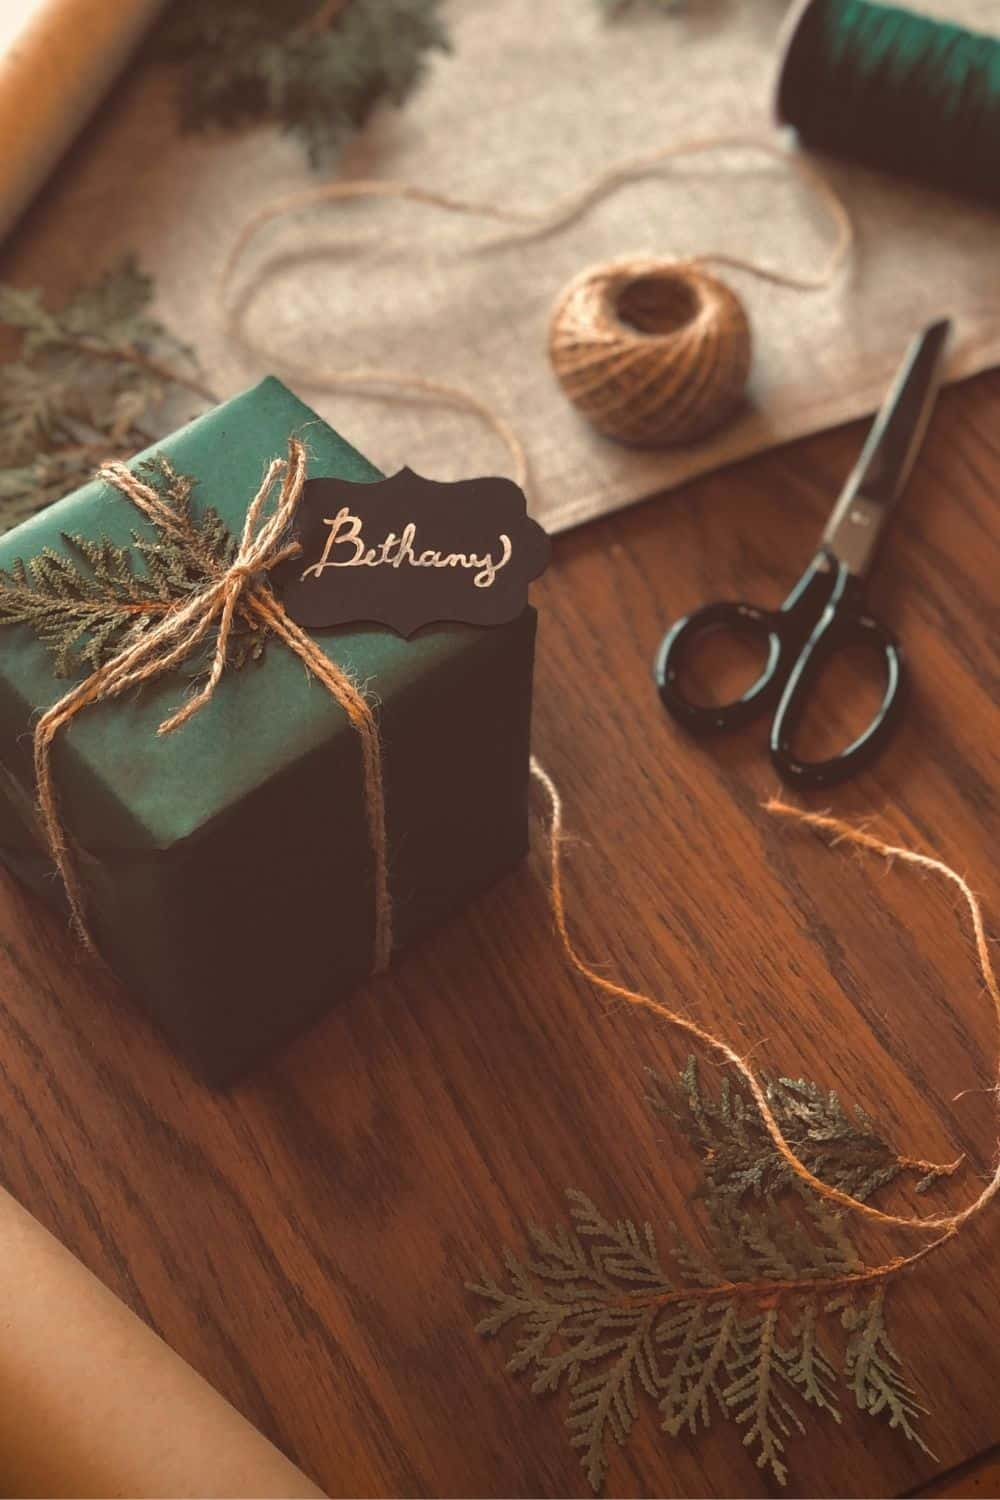 While there are endless possibilities for the creative mind, here are eight zero waste wrapping ideas to surprise your loved one with just a little bit of extra care Photo by Erica Marsland Huynh on Unsplash #zerowastewrapping #sustainablejungle